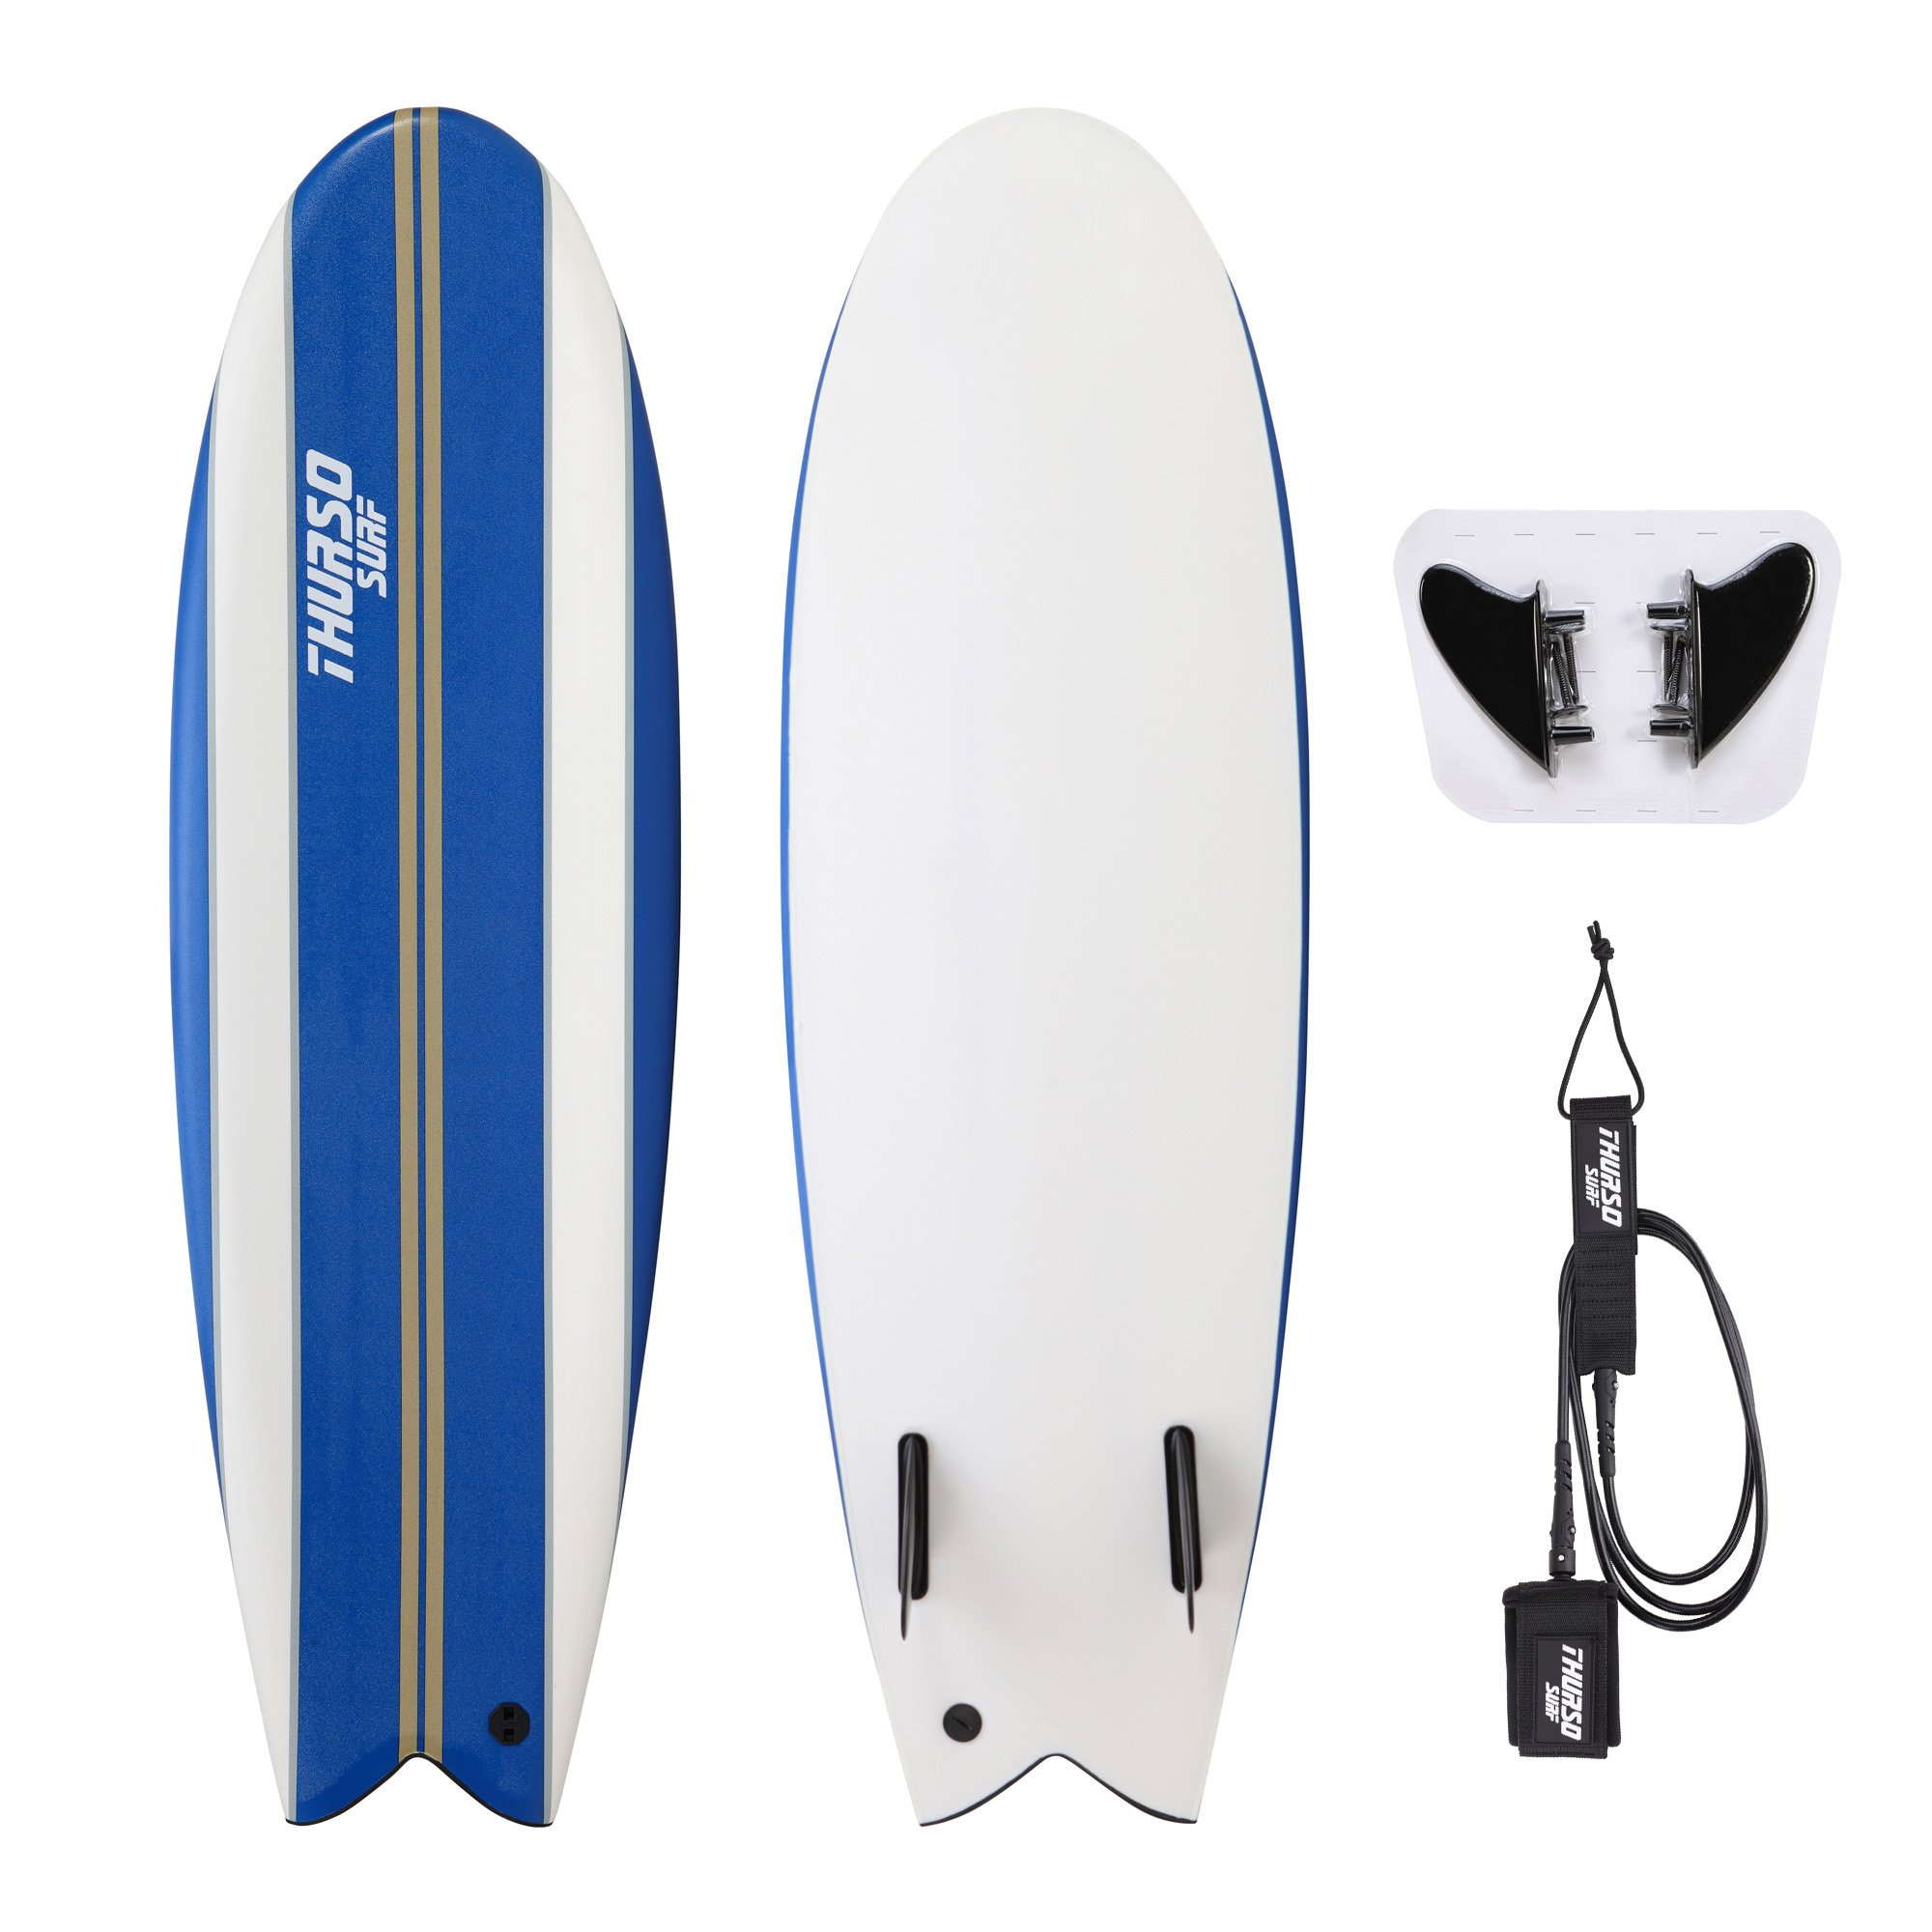 THURSO SURF Lancer 5'10'' Fish Soft Top Surfboard Package Includes Twin Fins Double Stainless Steel Swivel Leash EPS Core IXPE Deck HDPE Slick Bottom Built in Non Slip Deck Grip (Blue) by THURSO SURF